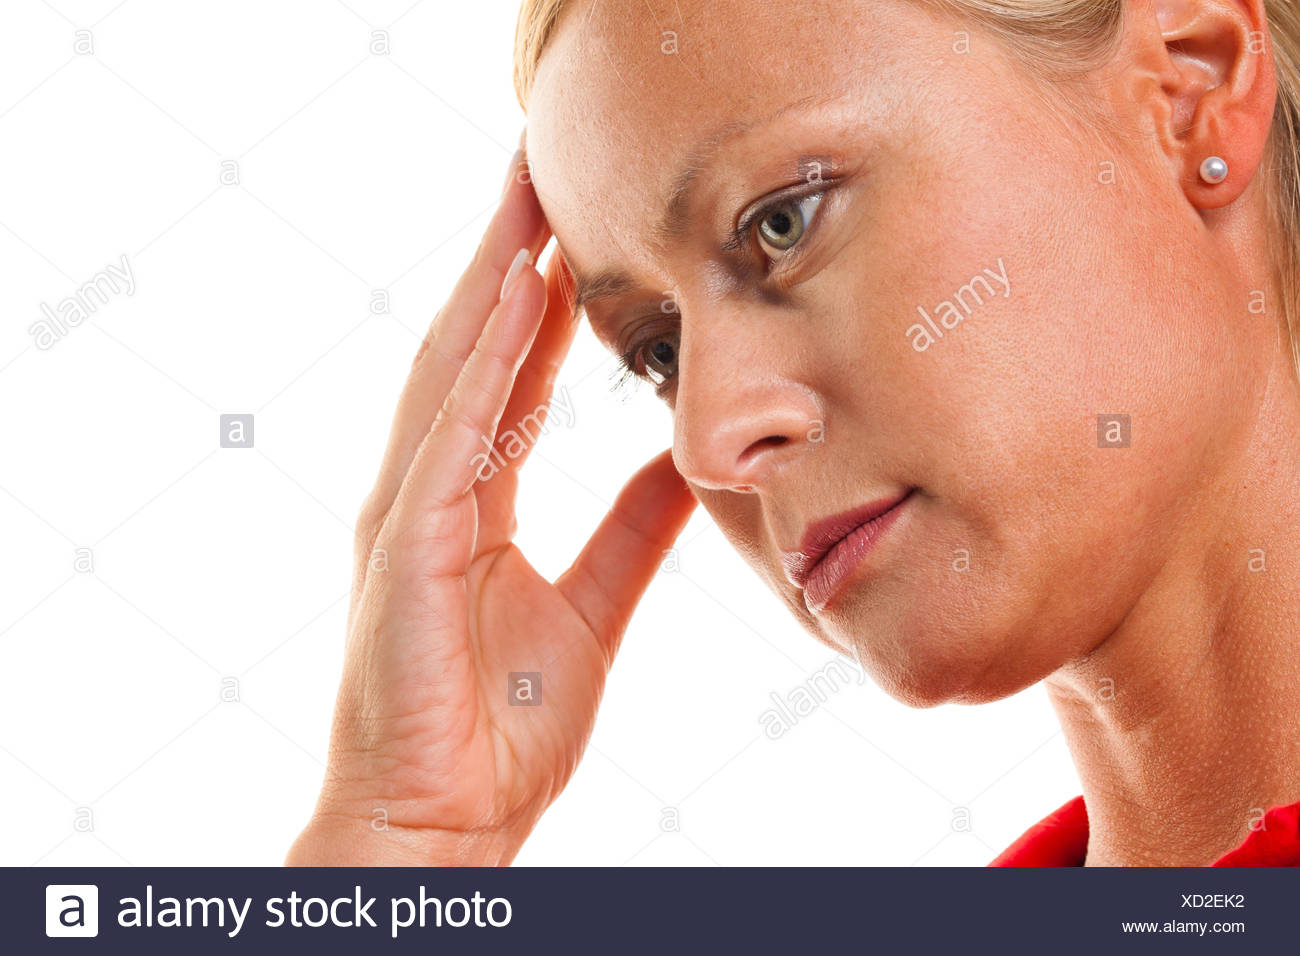 Pensive woman with headaches and migraines. - Stock Image